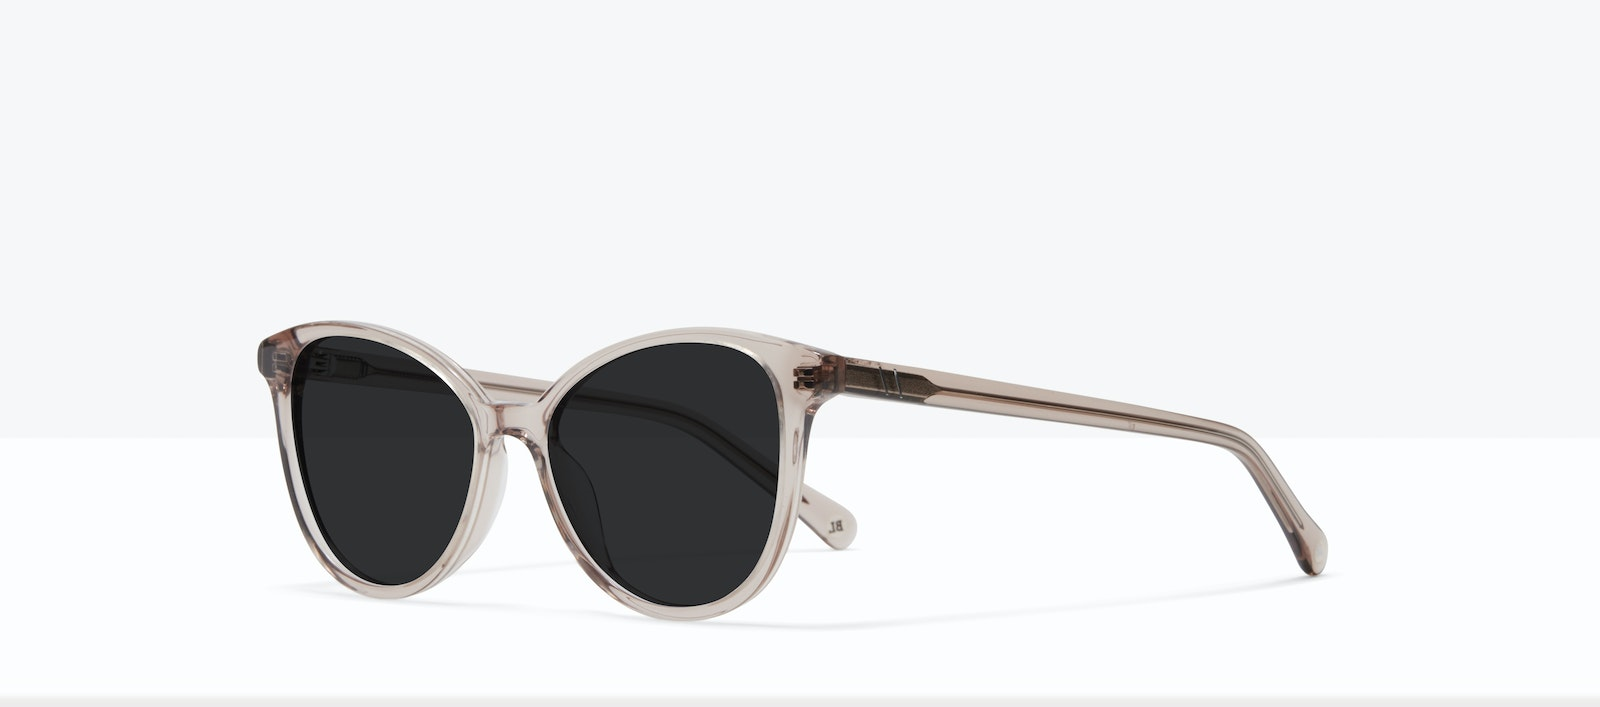 Affordable Fashion Glasses Cat Eye Sunglasses Women Esprit L Sand Tilt